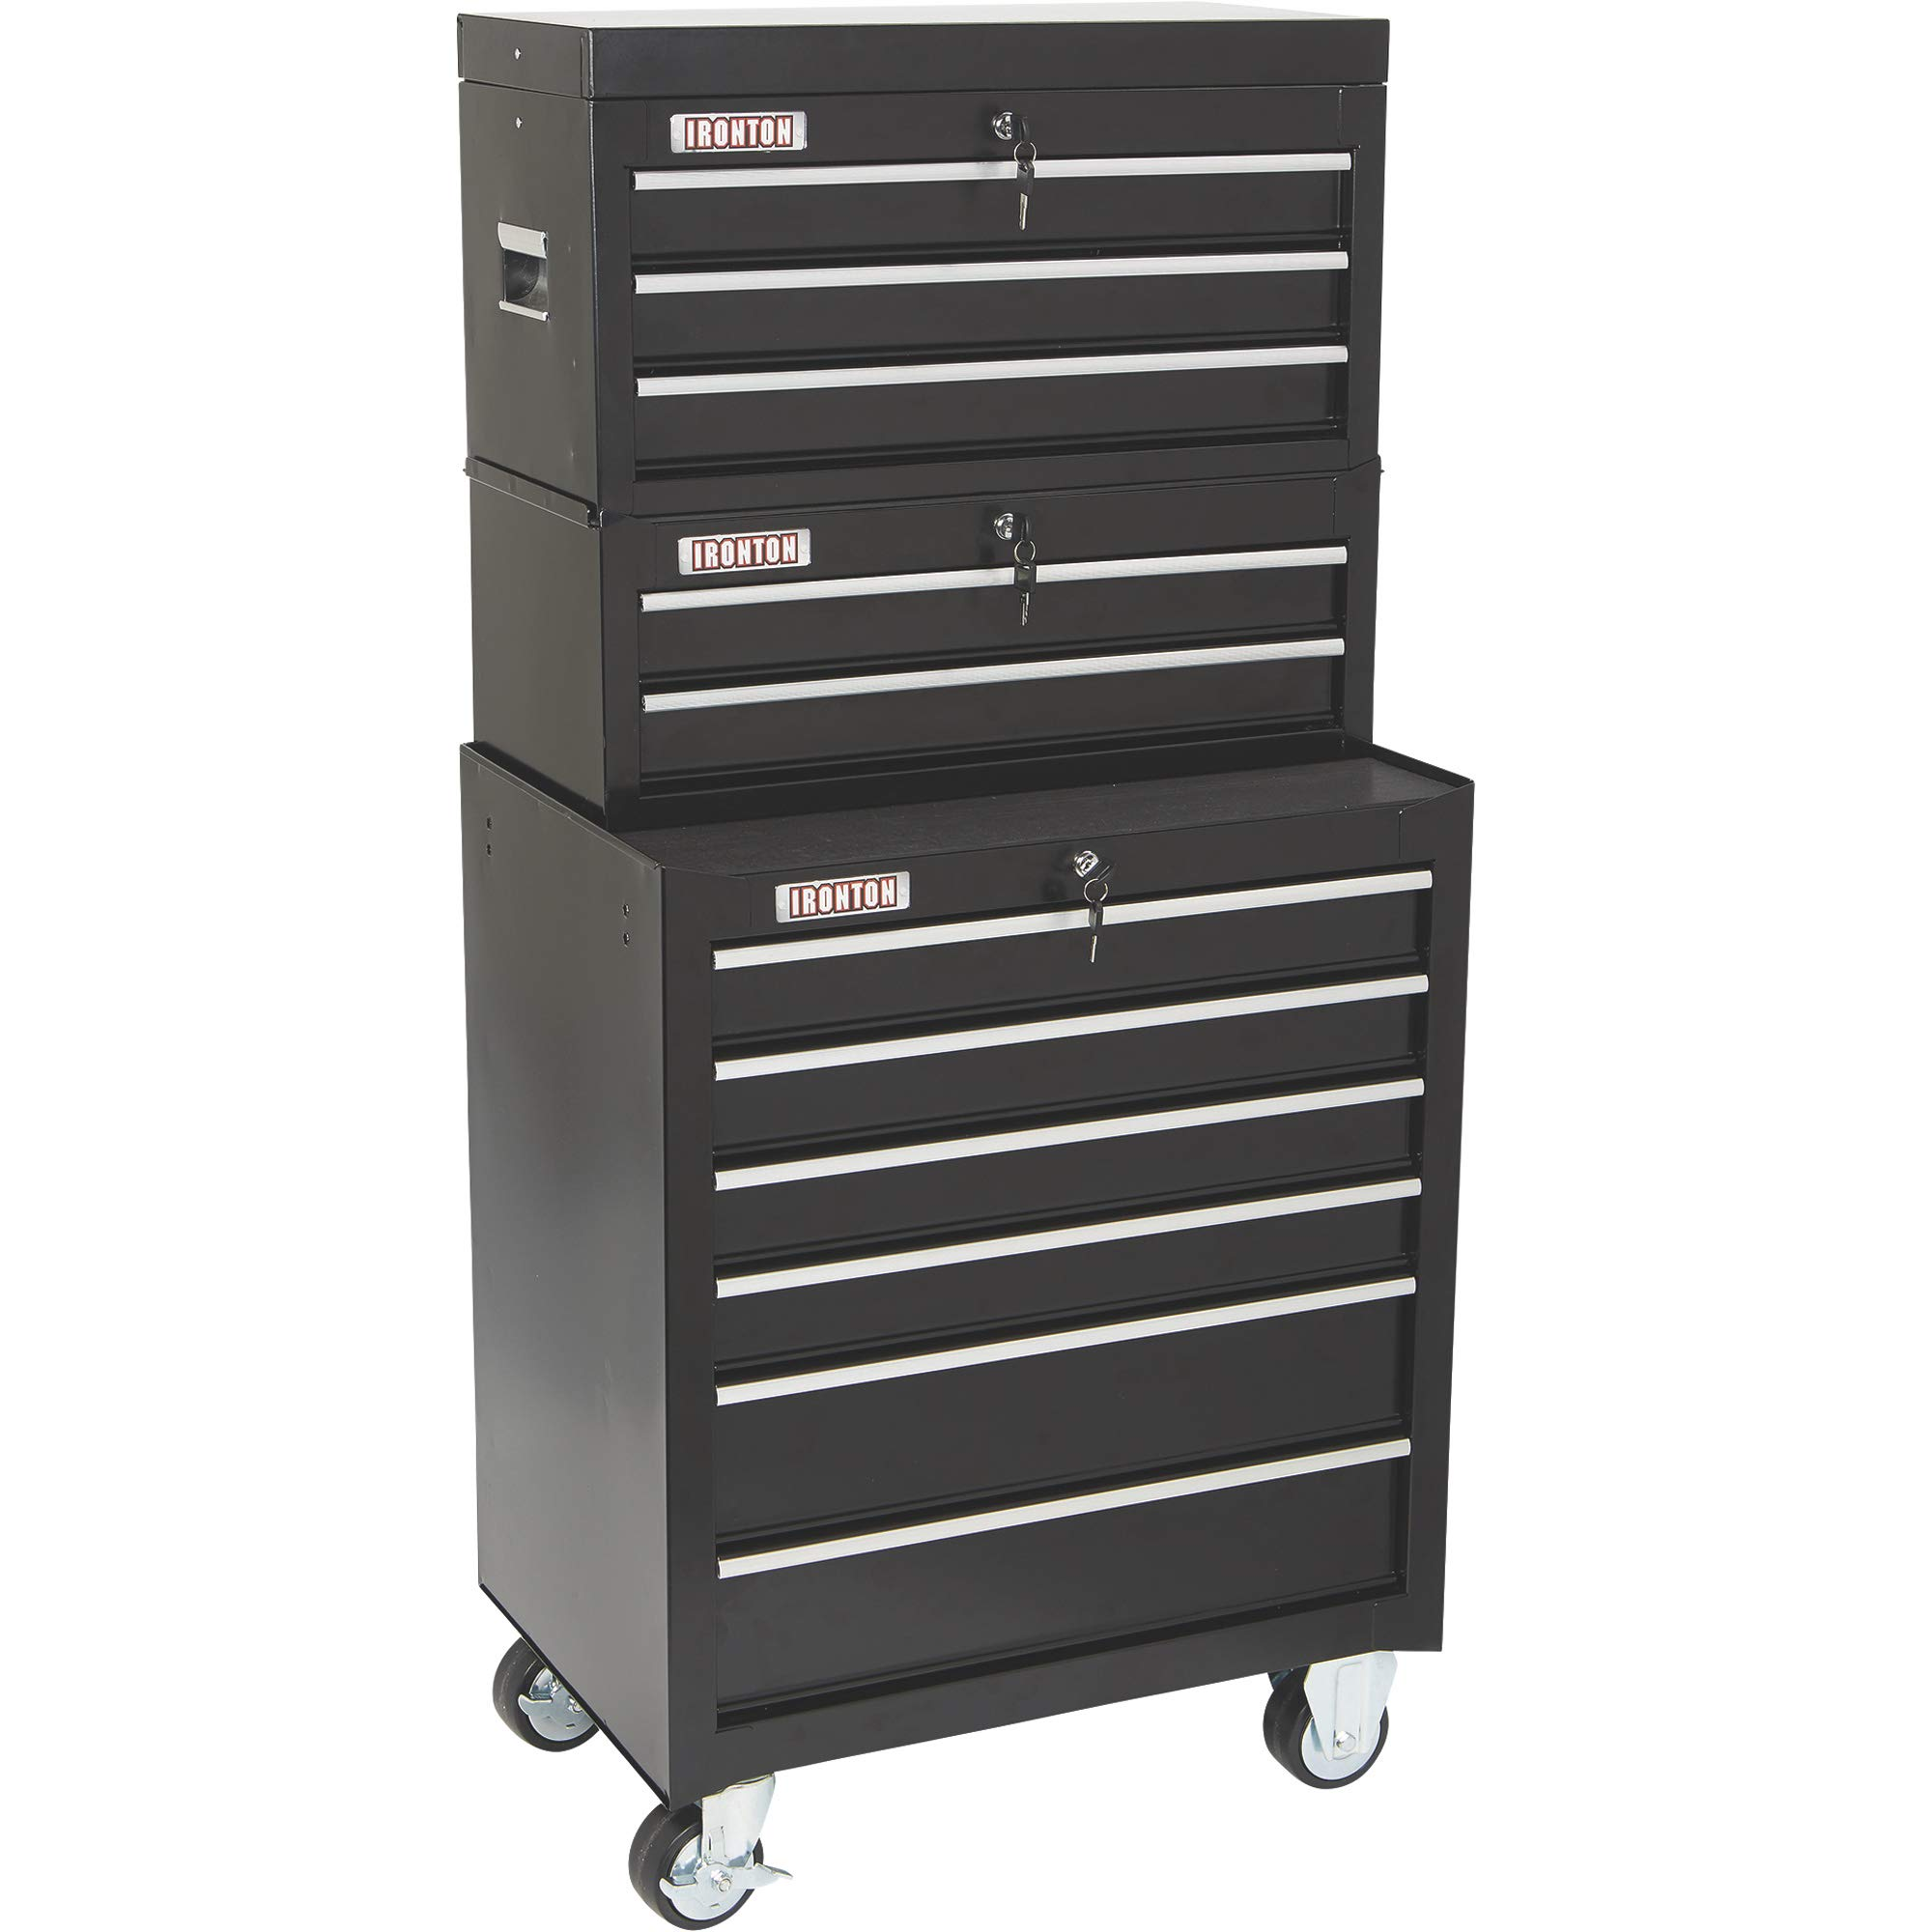 Ironton 26in. 6-Drawer Rolling Tool Chest - 26.75in.W x 18in.D x 33.3in.H by Ironton (Image #7)